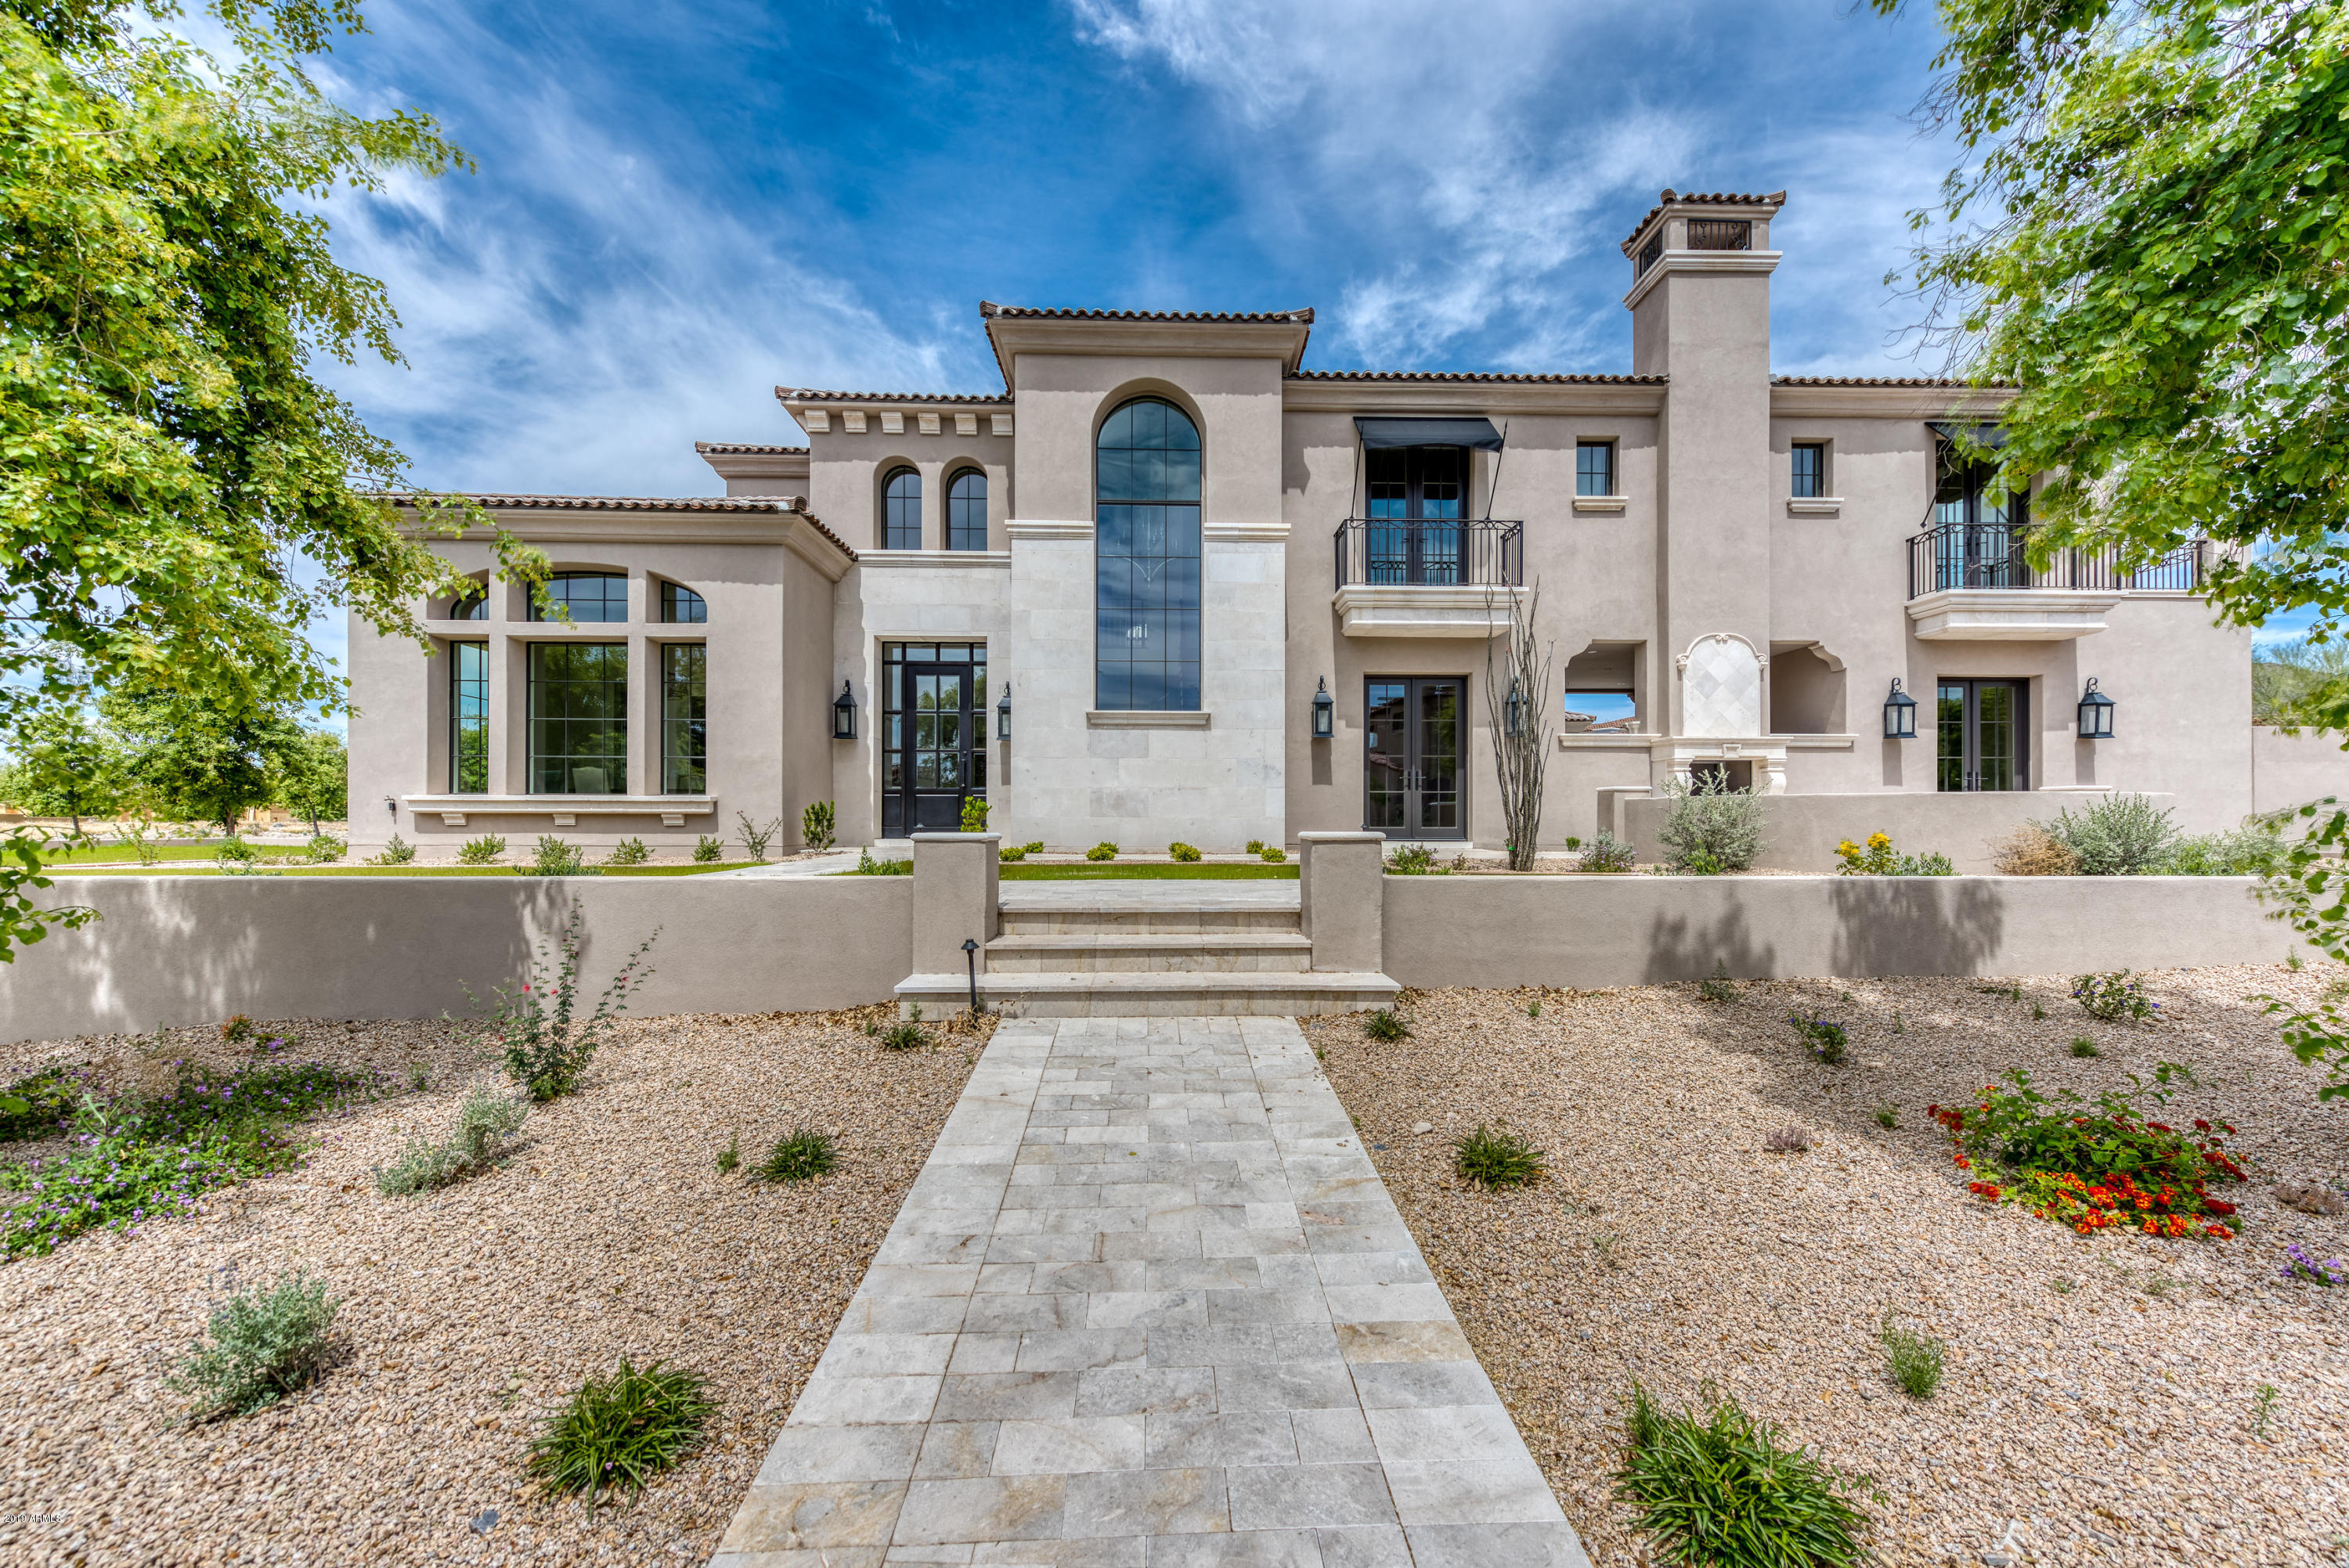 19083 N 98th Way, Scottsdale AZ 85255